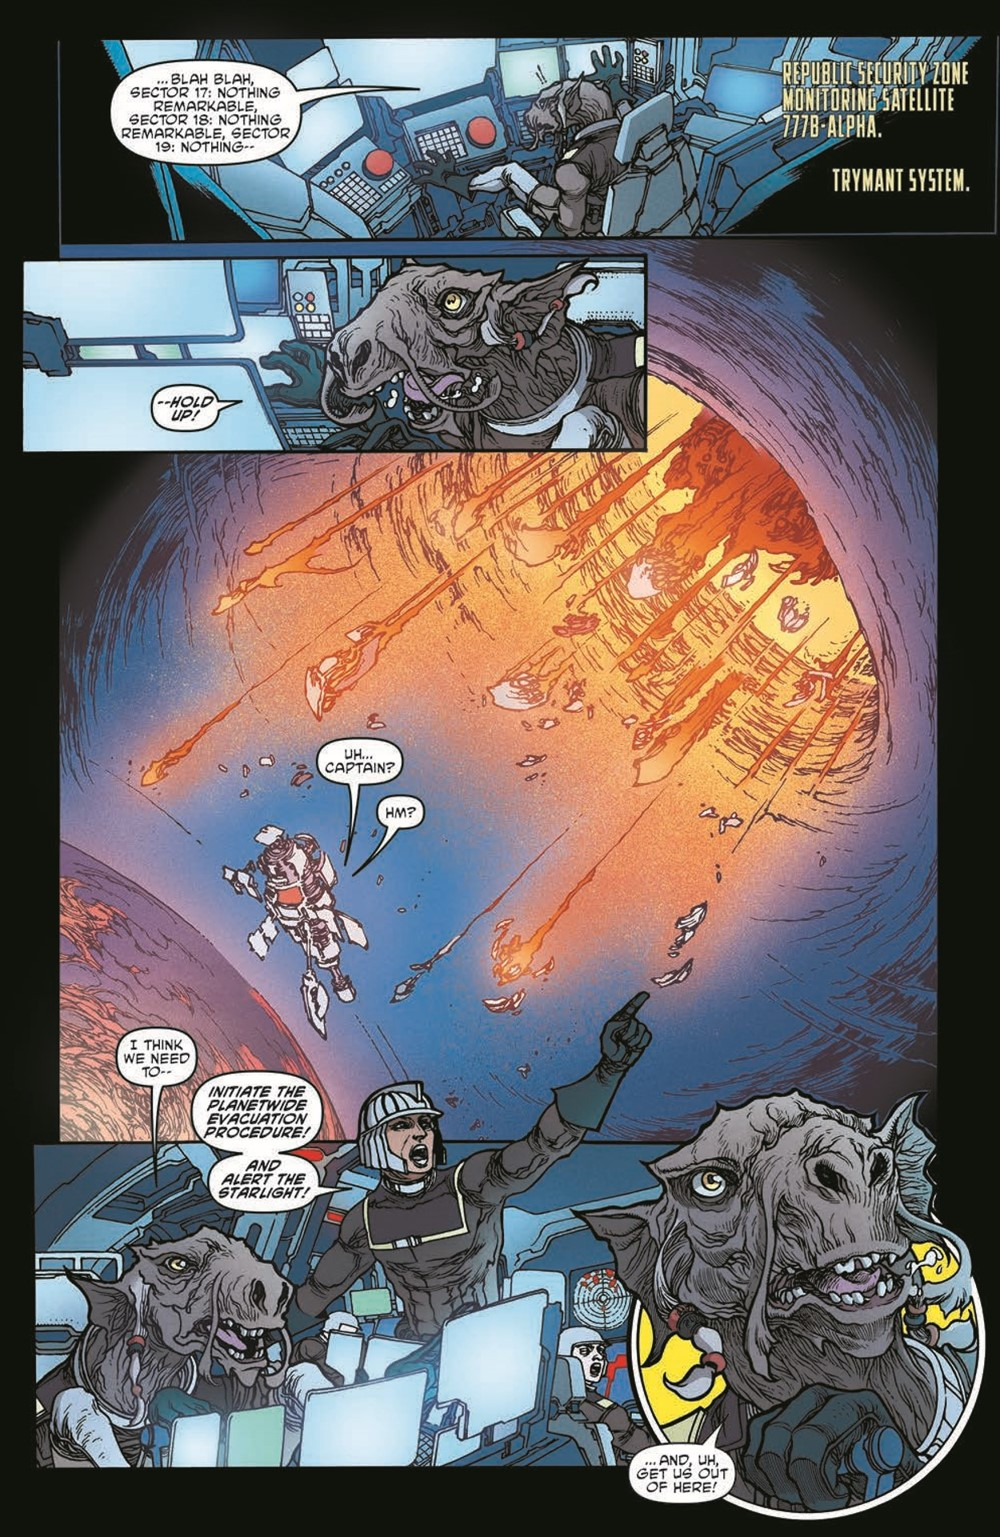 SWAHRA01-pr-3 ComicList Previews: STAR WARS THE HIGH REPUBLIC ADVENTURES #1